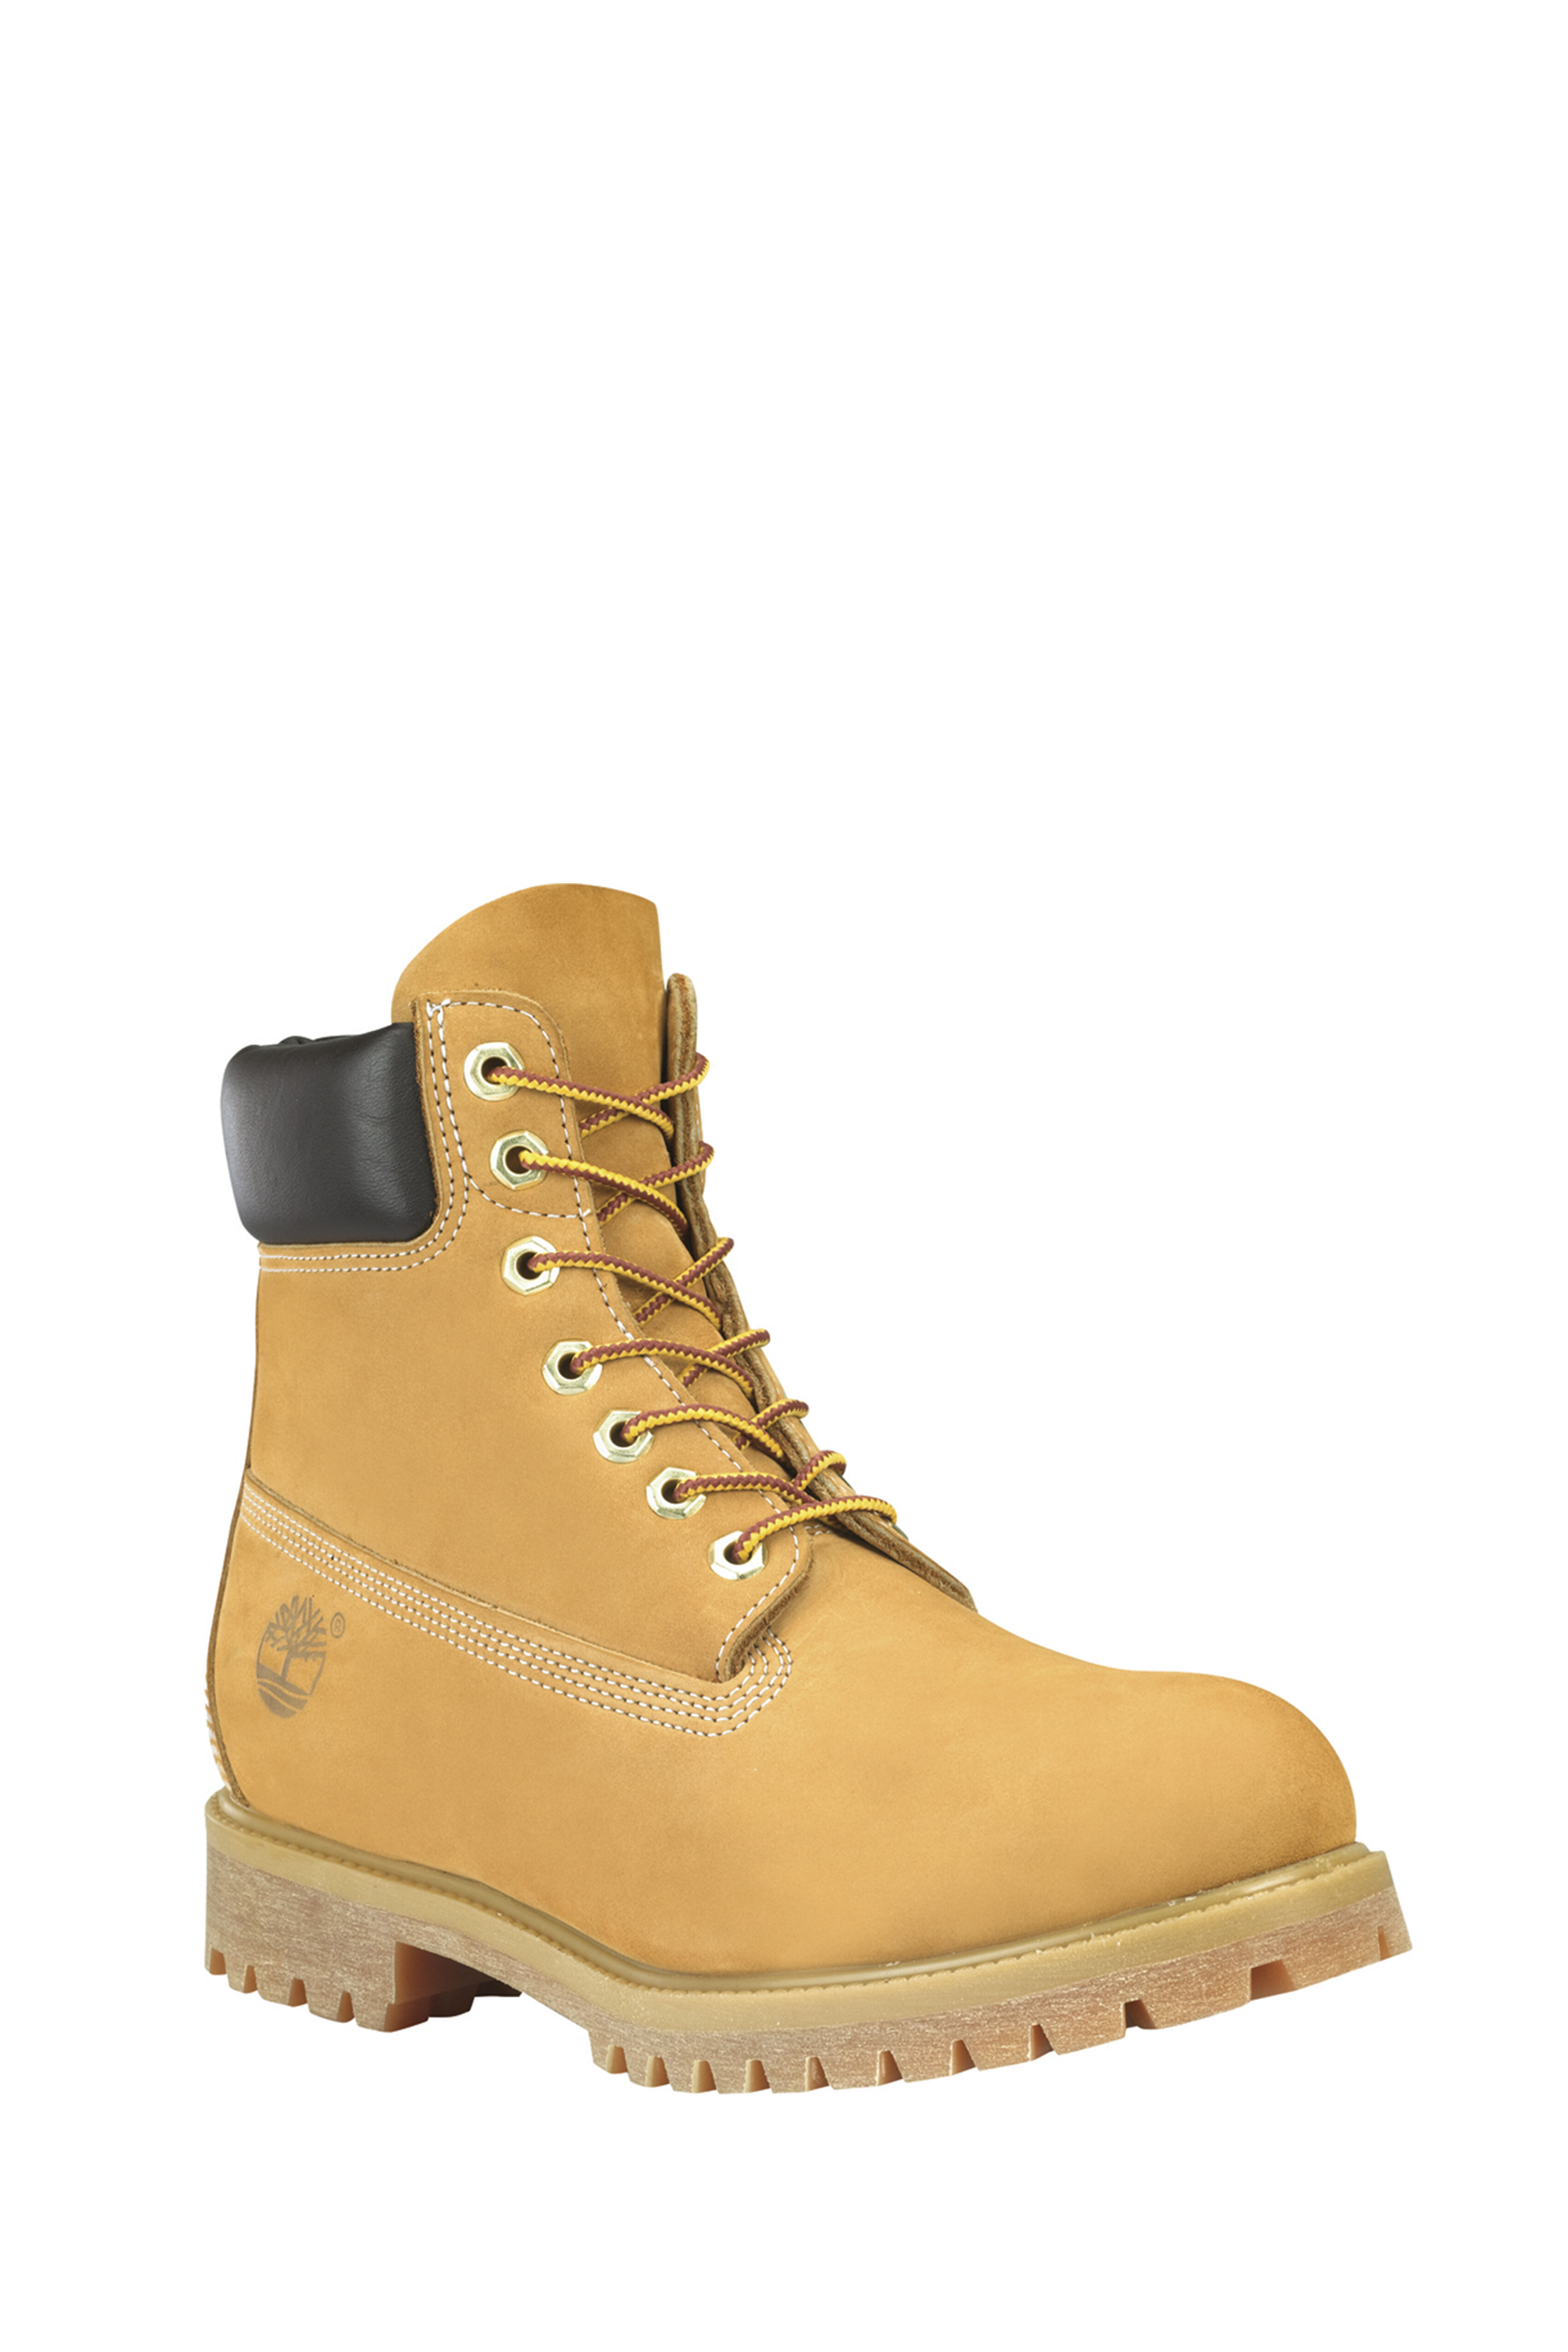 Shop Top Brands Of Timberland Wheat Nubuck Women's 6 Inch